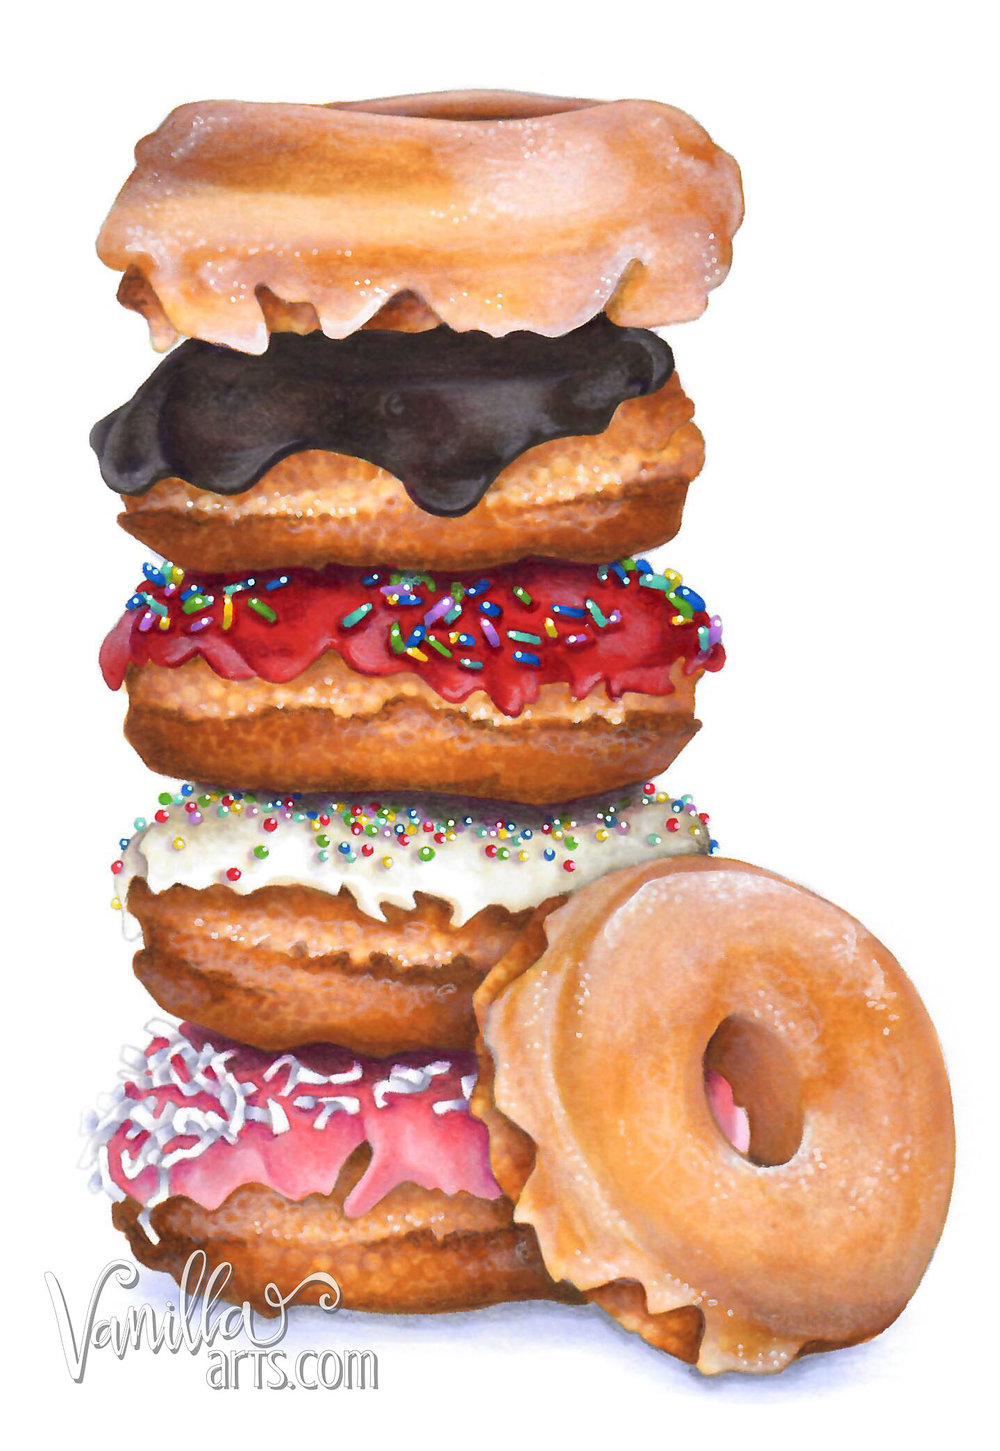 """Get your FREE copy of the  """"Doughnut Stack""""  digital stamp in April 2018. Vanilla Arts Co stamps are designed especially for use with Copic Markers, colored pencil, even watercolor. Join the Free Digi Club for a new stamp every month! 